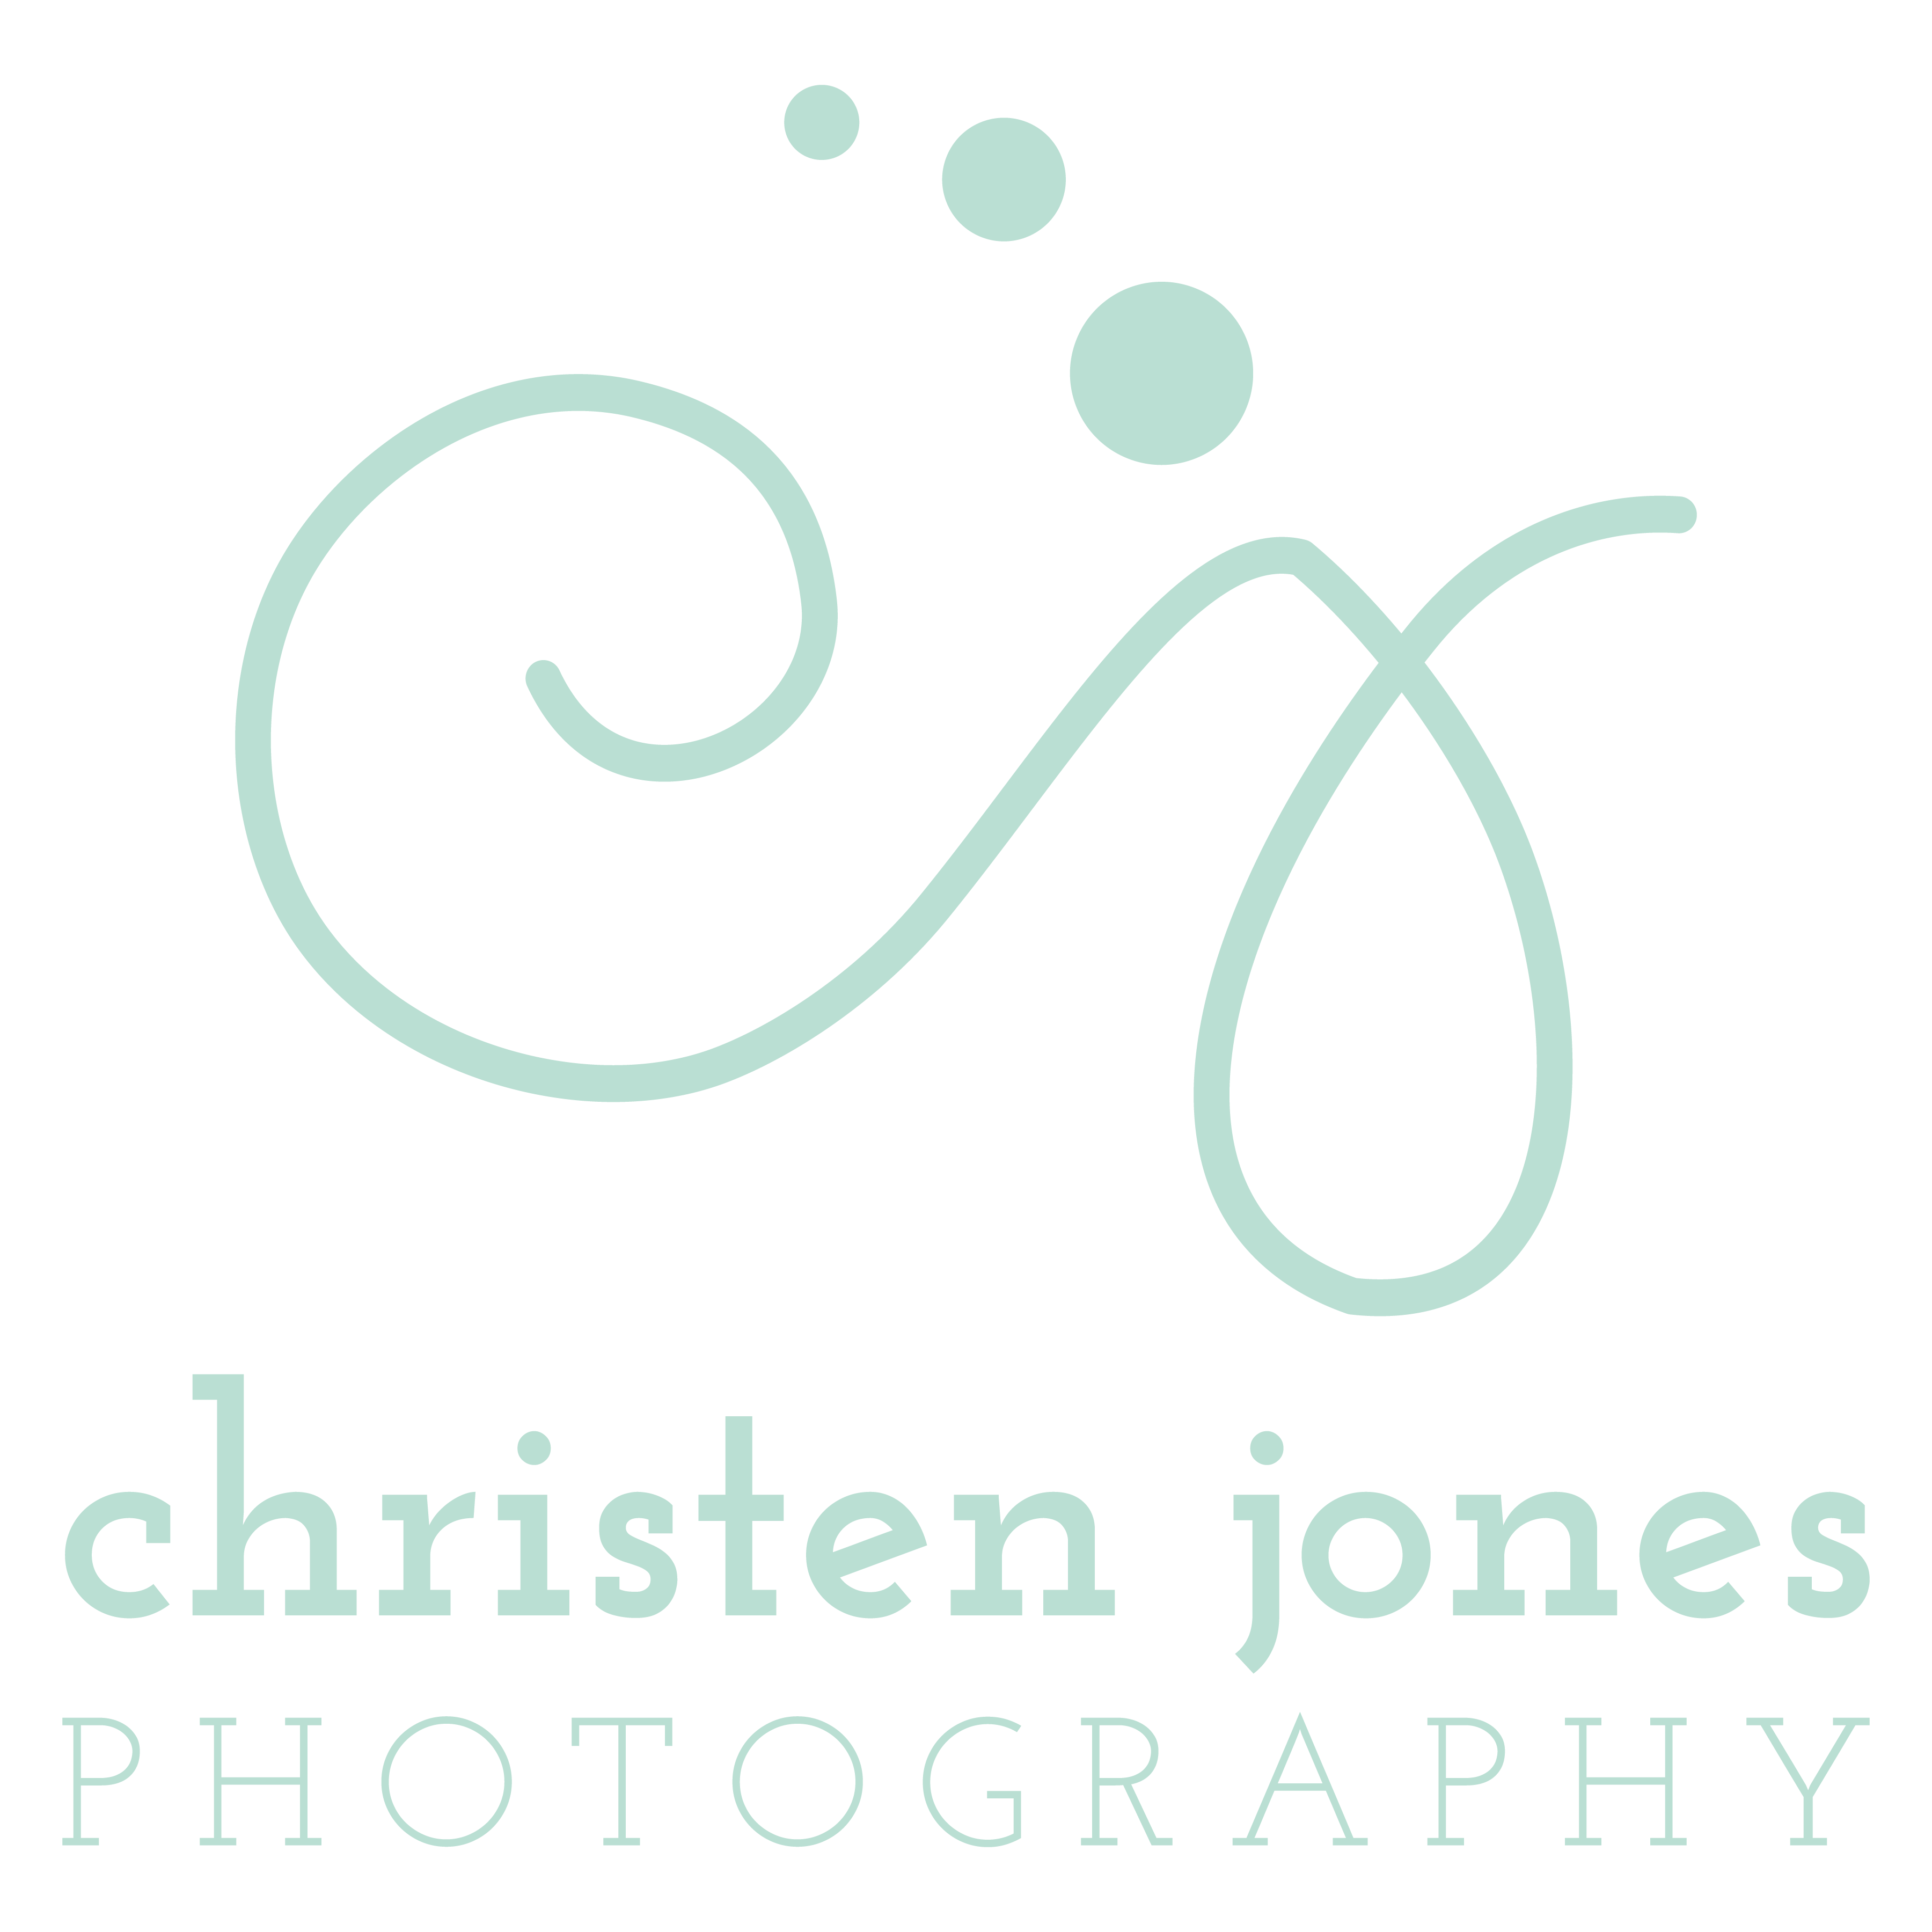 Memphis Photographer